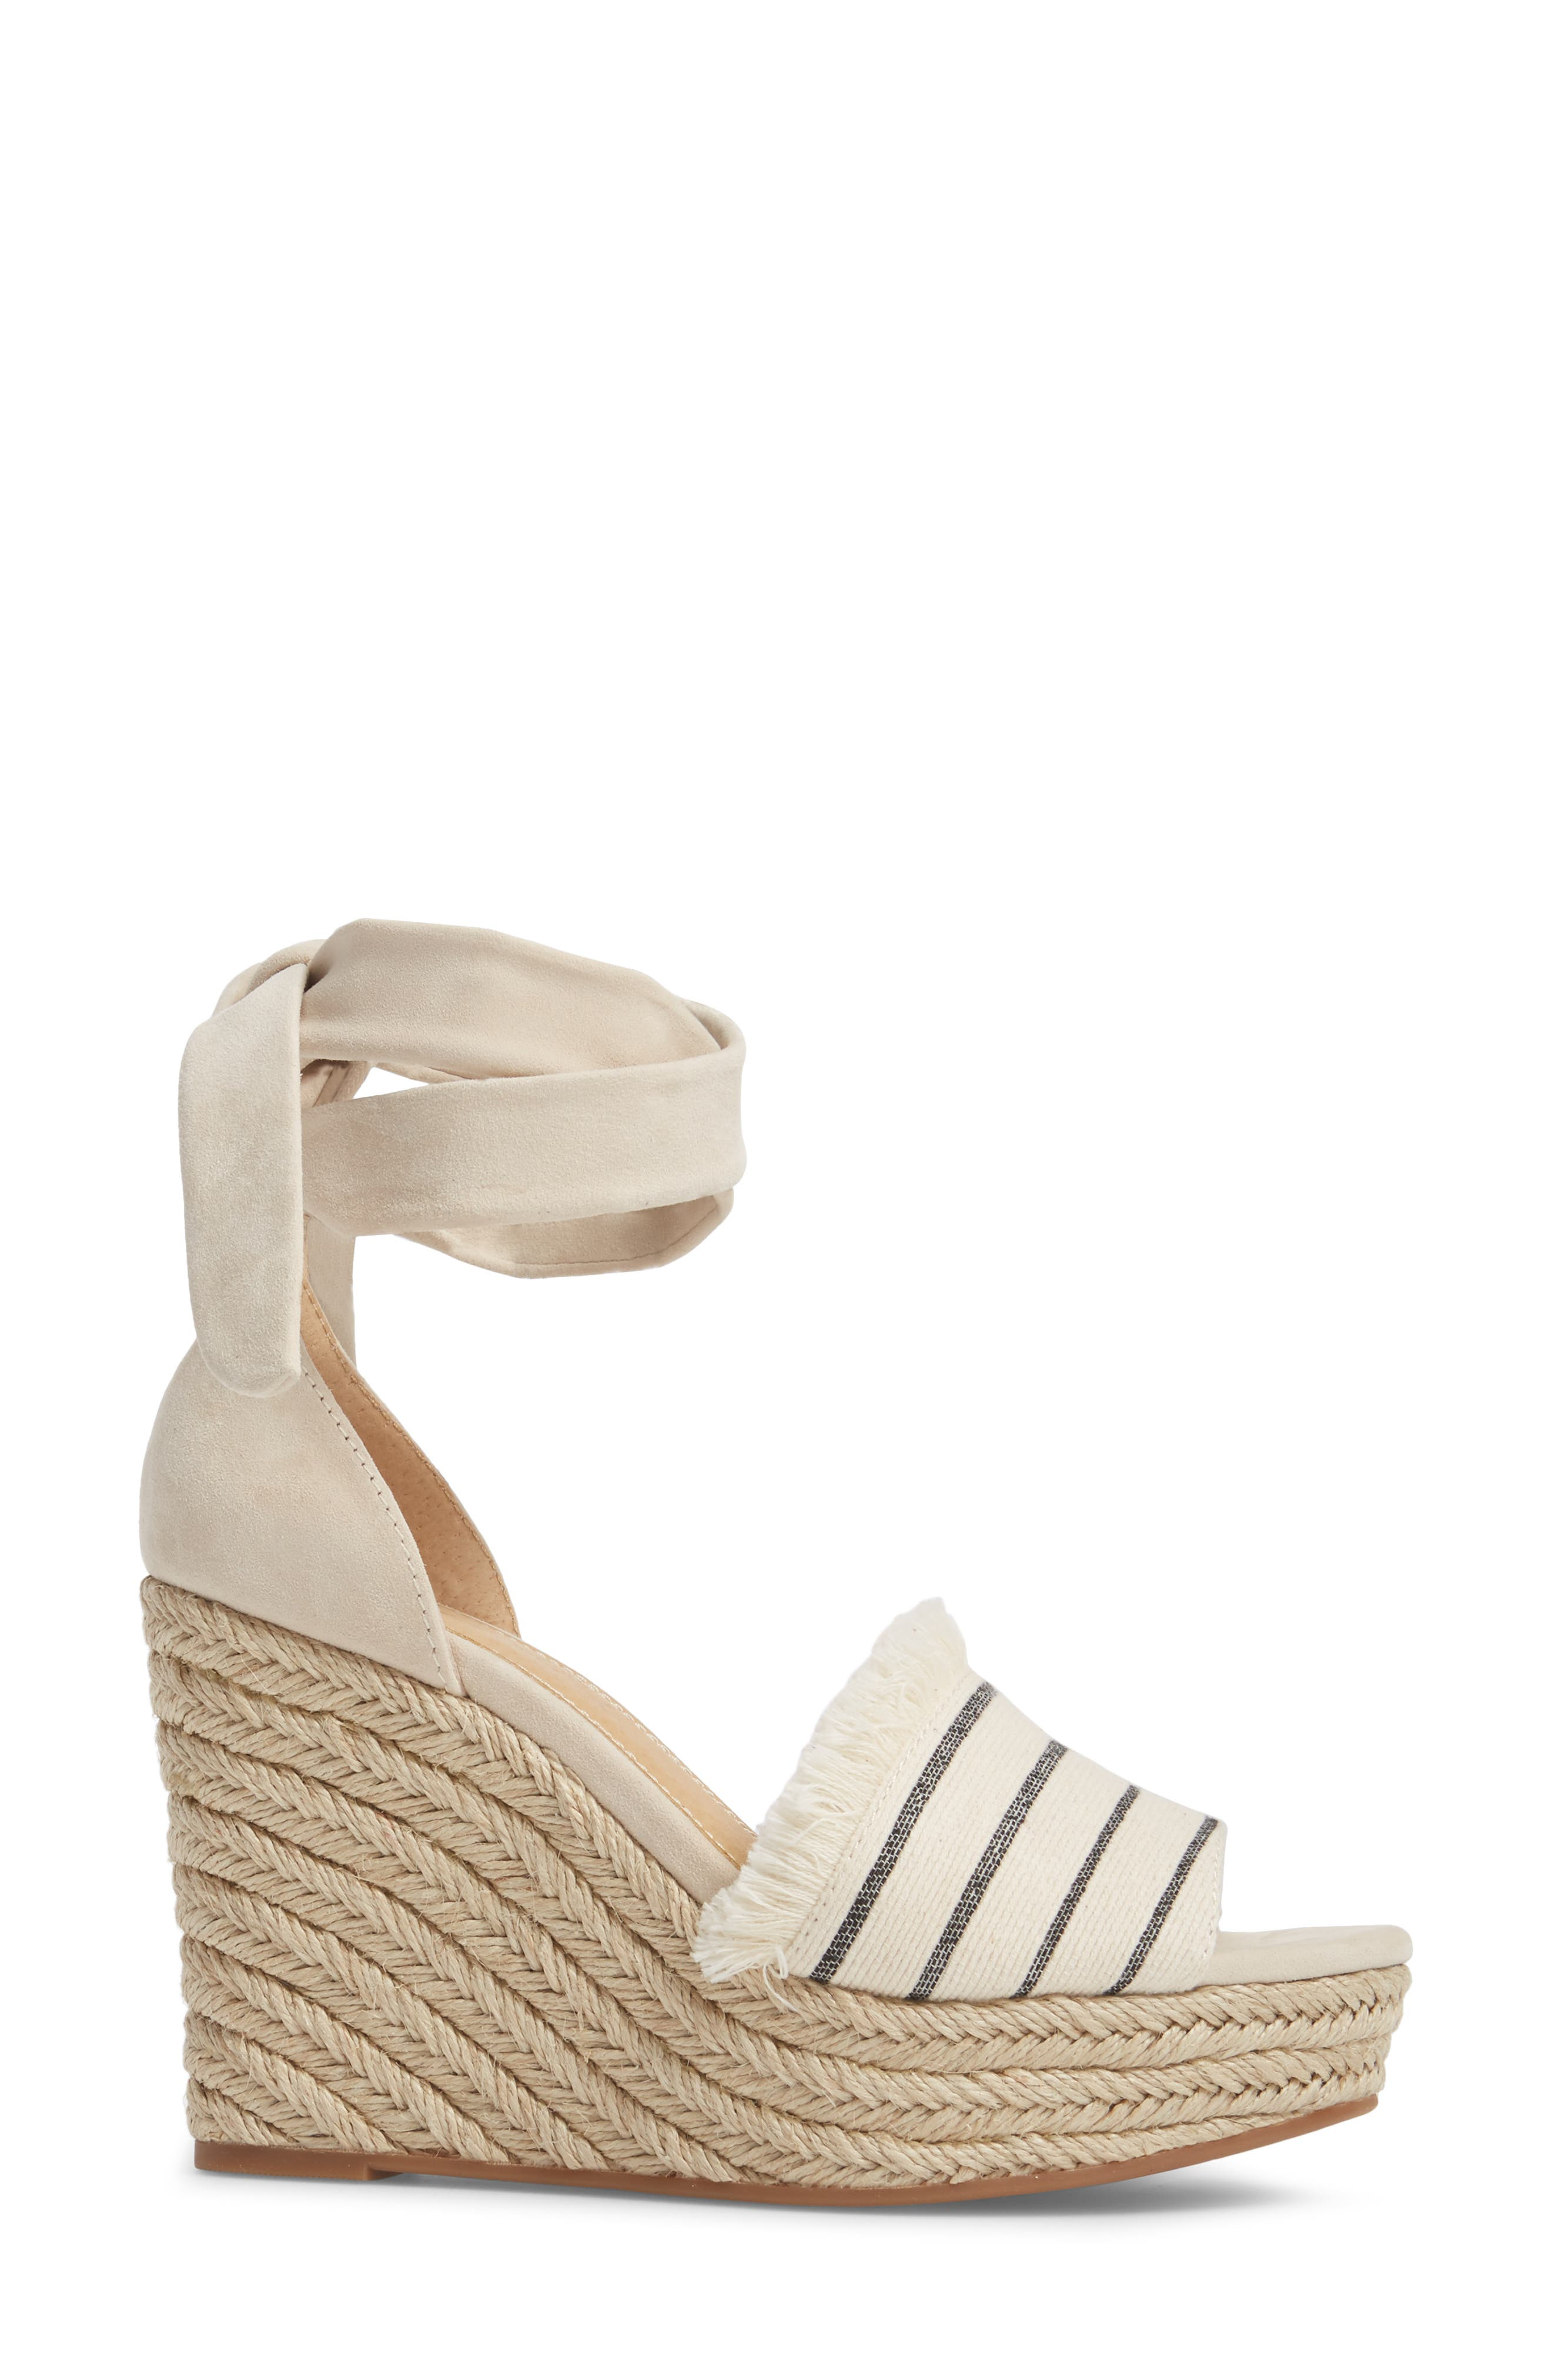 Barke Fringed Platform Wedge Sandal,                             Alternate thumbnail 3, color,                             100